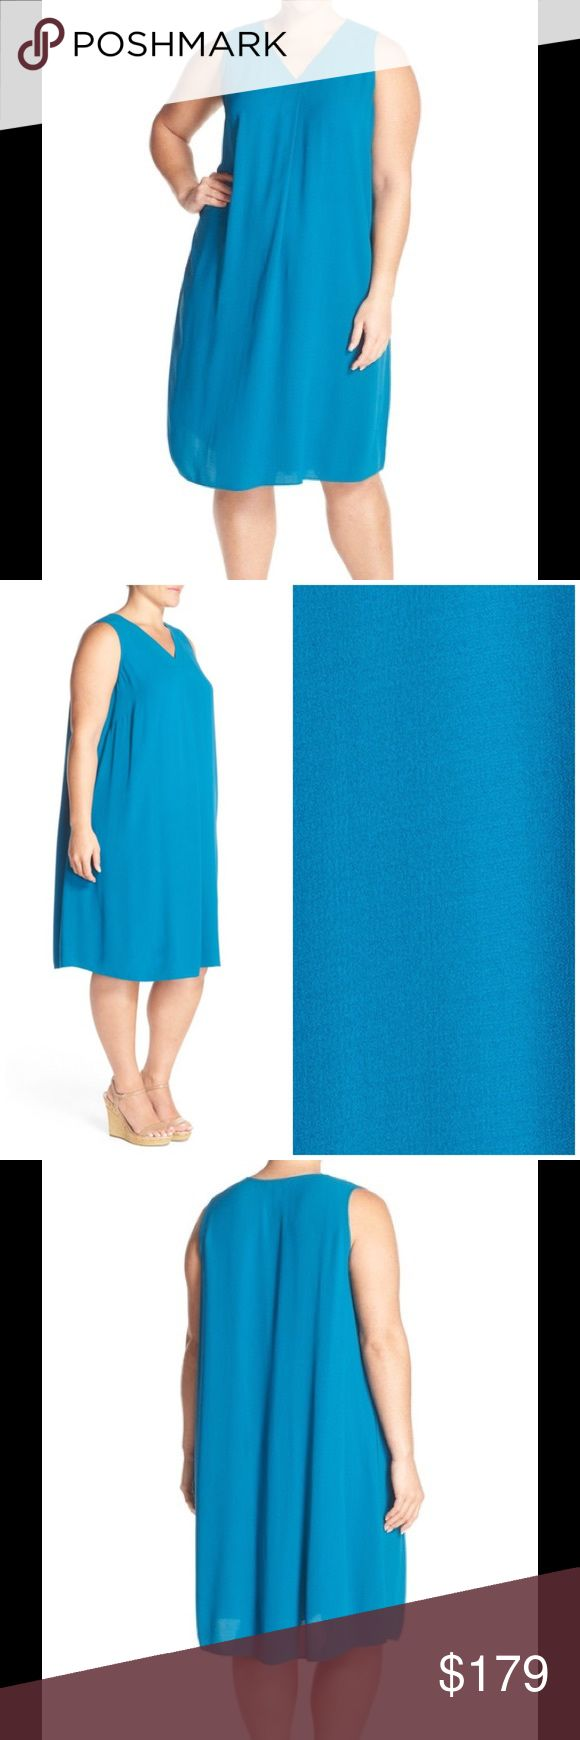 """🆕 Eileen Fisher 100% silk Shift Dress jewel blue Elegantly simple and luxuriously soft, a V-neck shift that drops to midi length floats about the figure in fluid silk. - 43"""" length  - Slips on over head - V-neck - Sleeveless - Side-seam pockets - Unlined - 100% silk - Dry clean or machine wash cold, line dry Brand new with tag. Retail price $358. Eileen Fisher Dresses"""